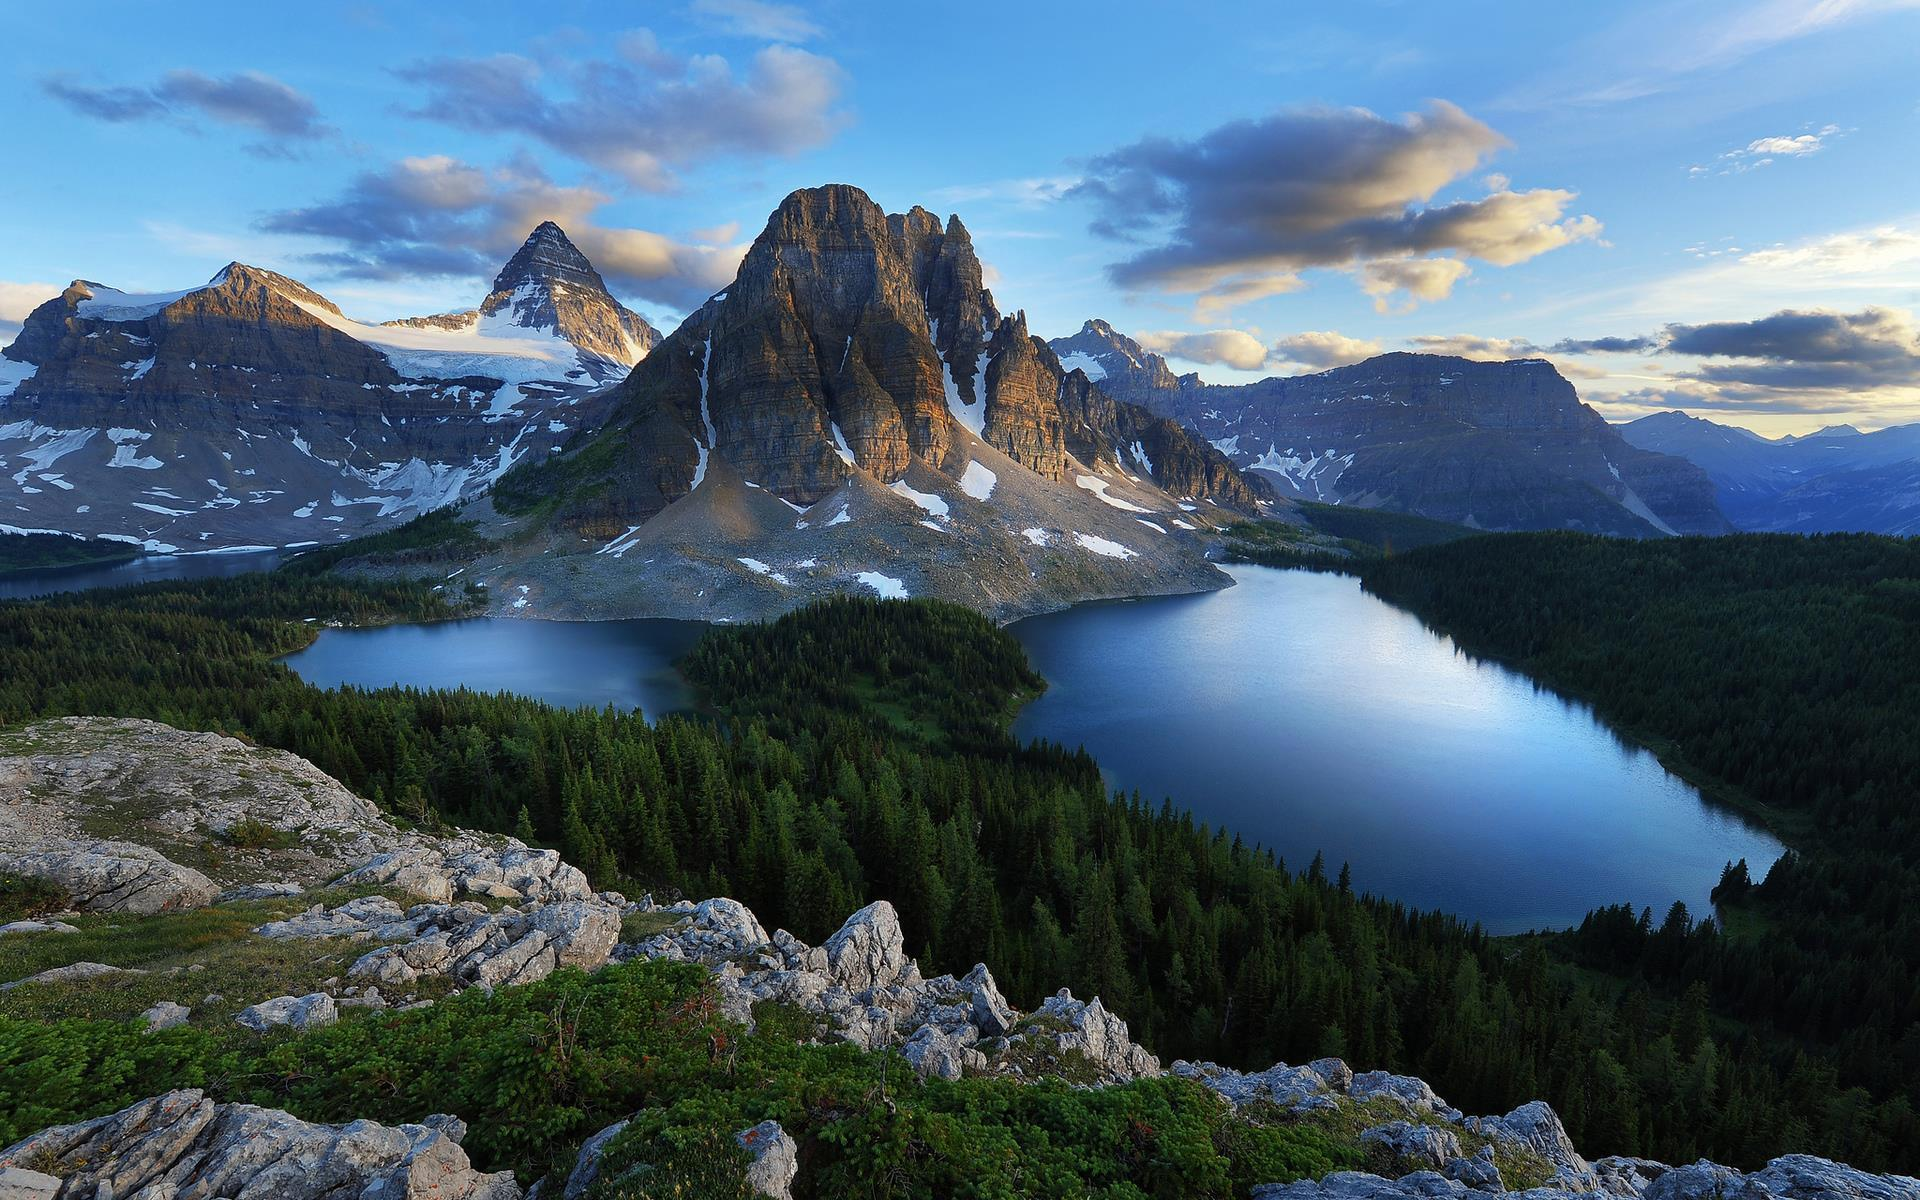 Mountain Wallpaper for Android - APK Download